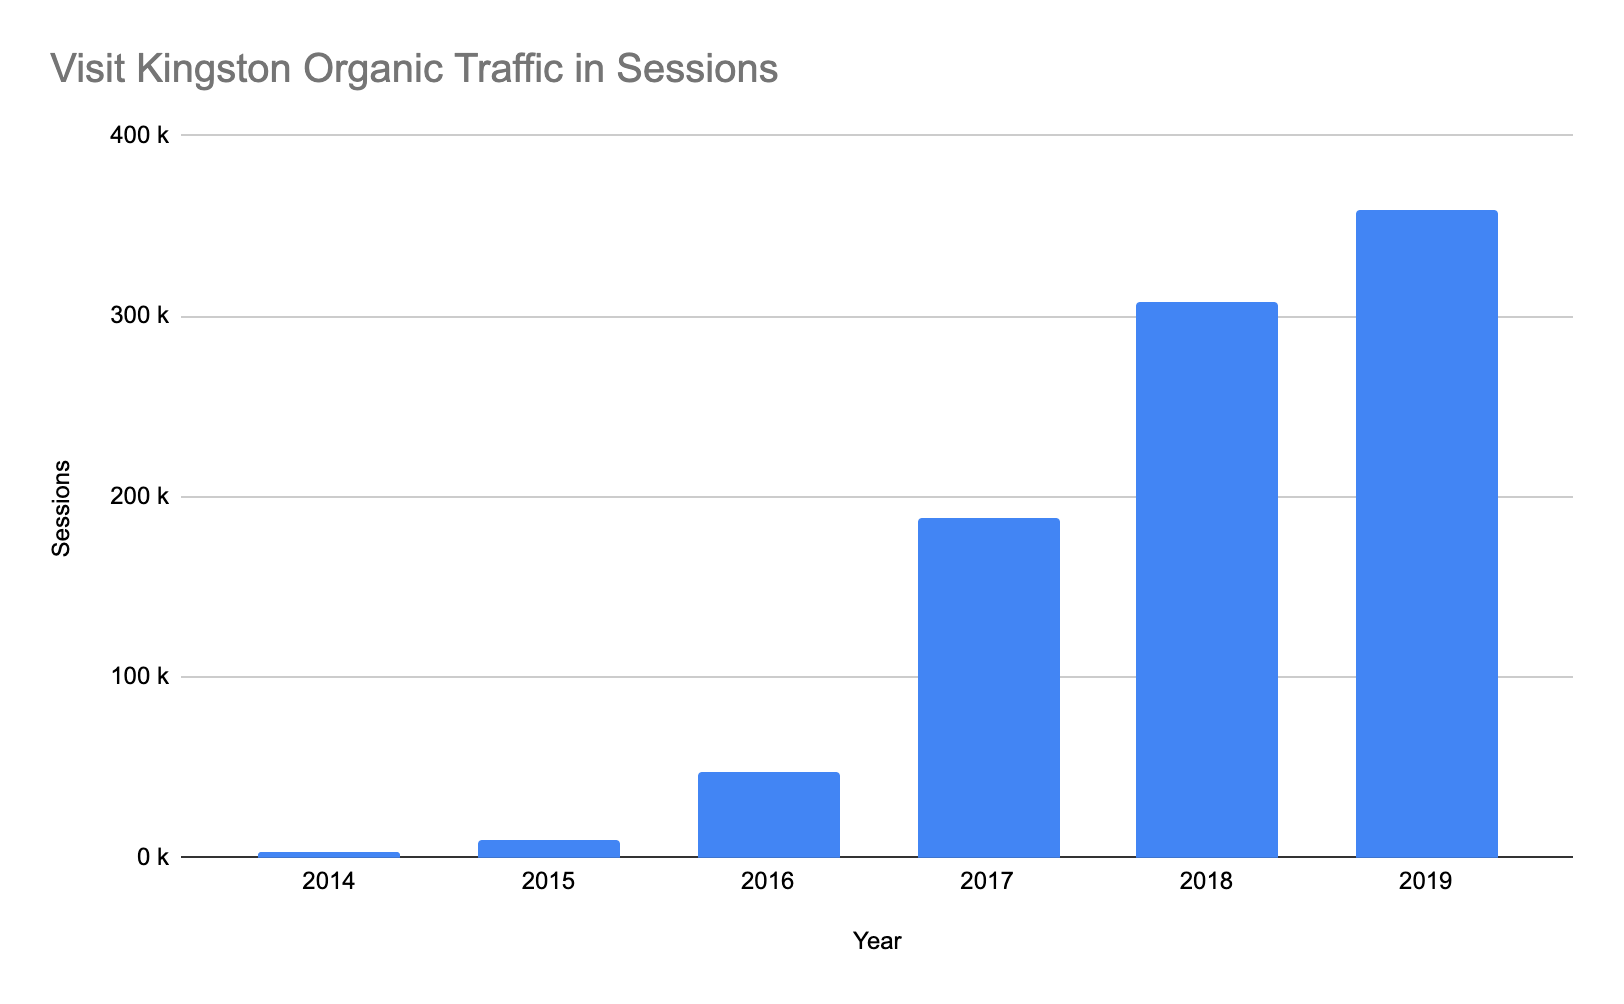 Graph showing Visit Kingston organic traffic in sessions from 2014 - 2019